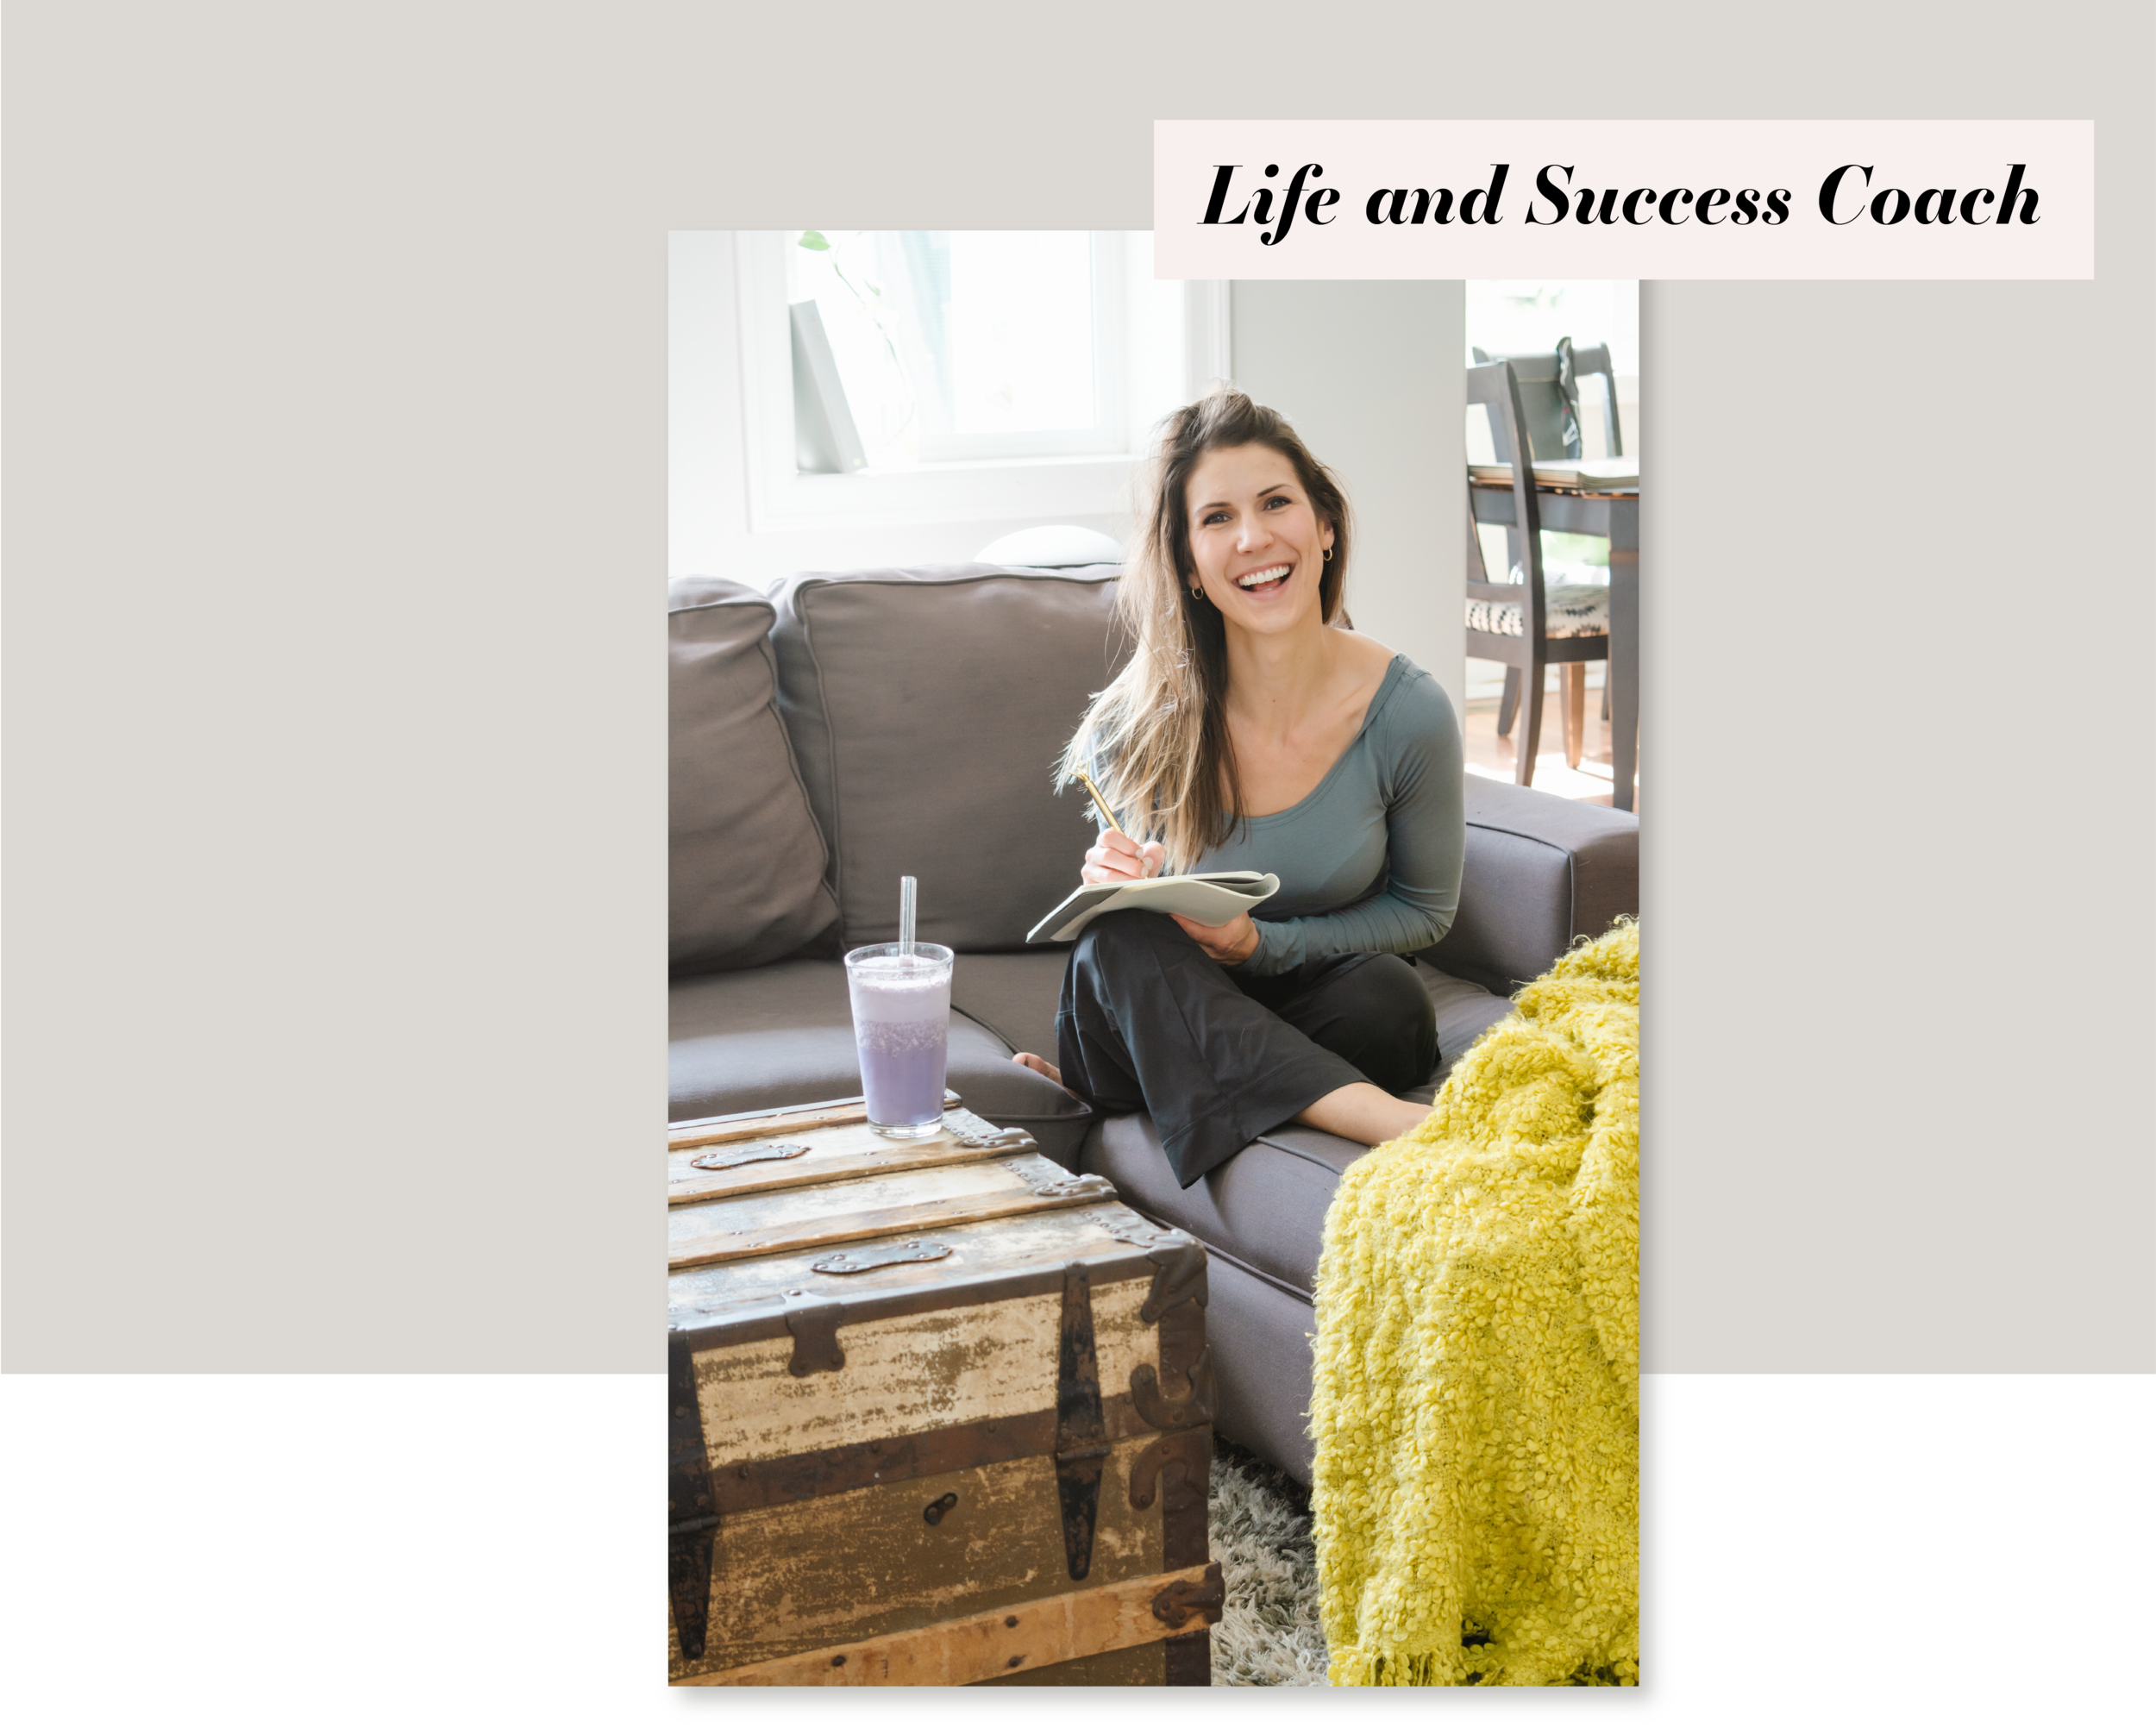 Hey, I'm Justine! - I'm a Transformational Life and Success Coach, Wife and mom of two. I am deeply passionate about using my experience in life, motherhood, and business as torch to inspire and guide others.